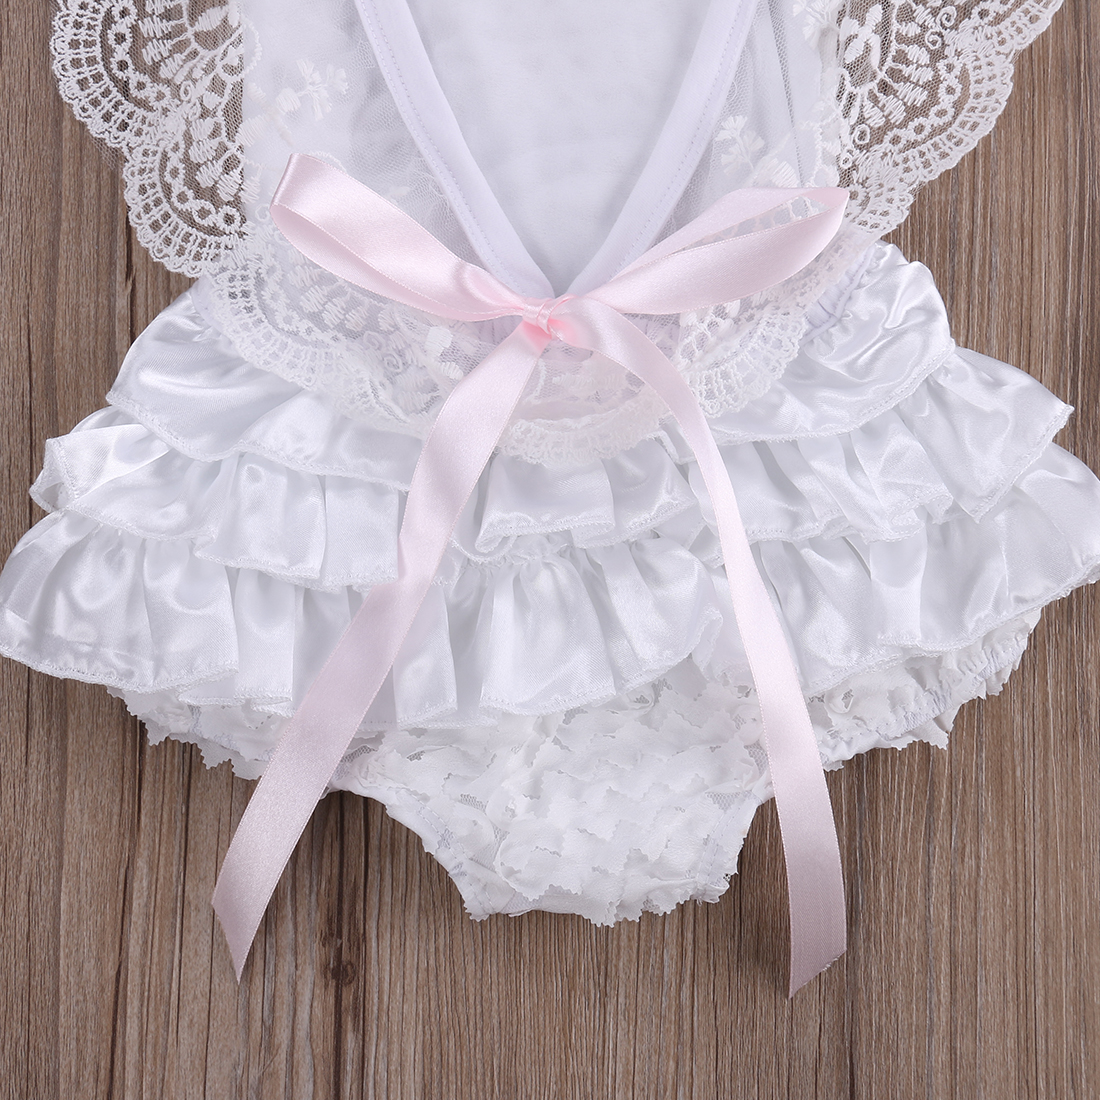 Cotton Bow Cute White Rompers Infant Baby Girl Clothes